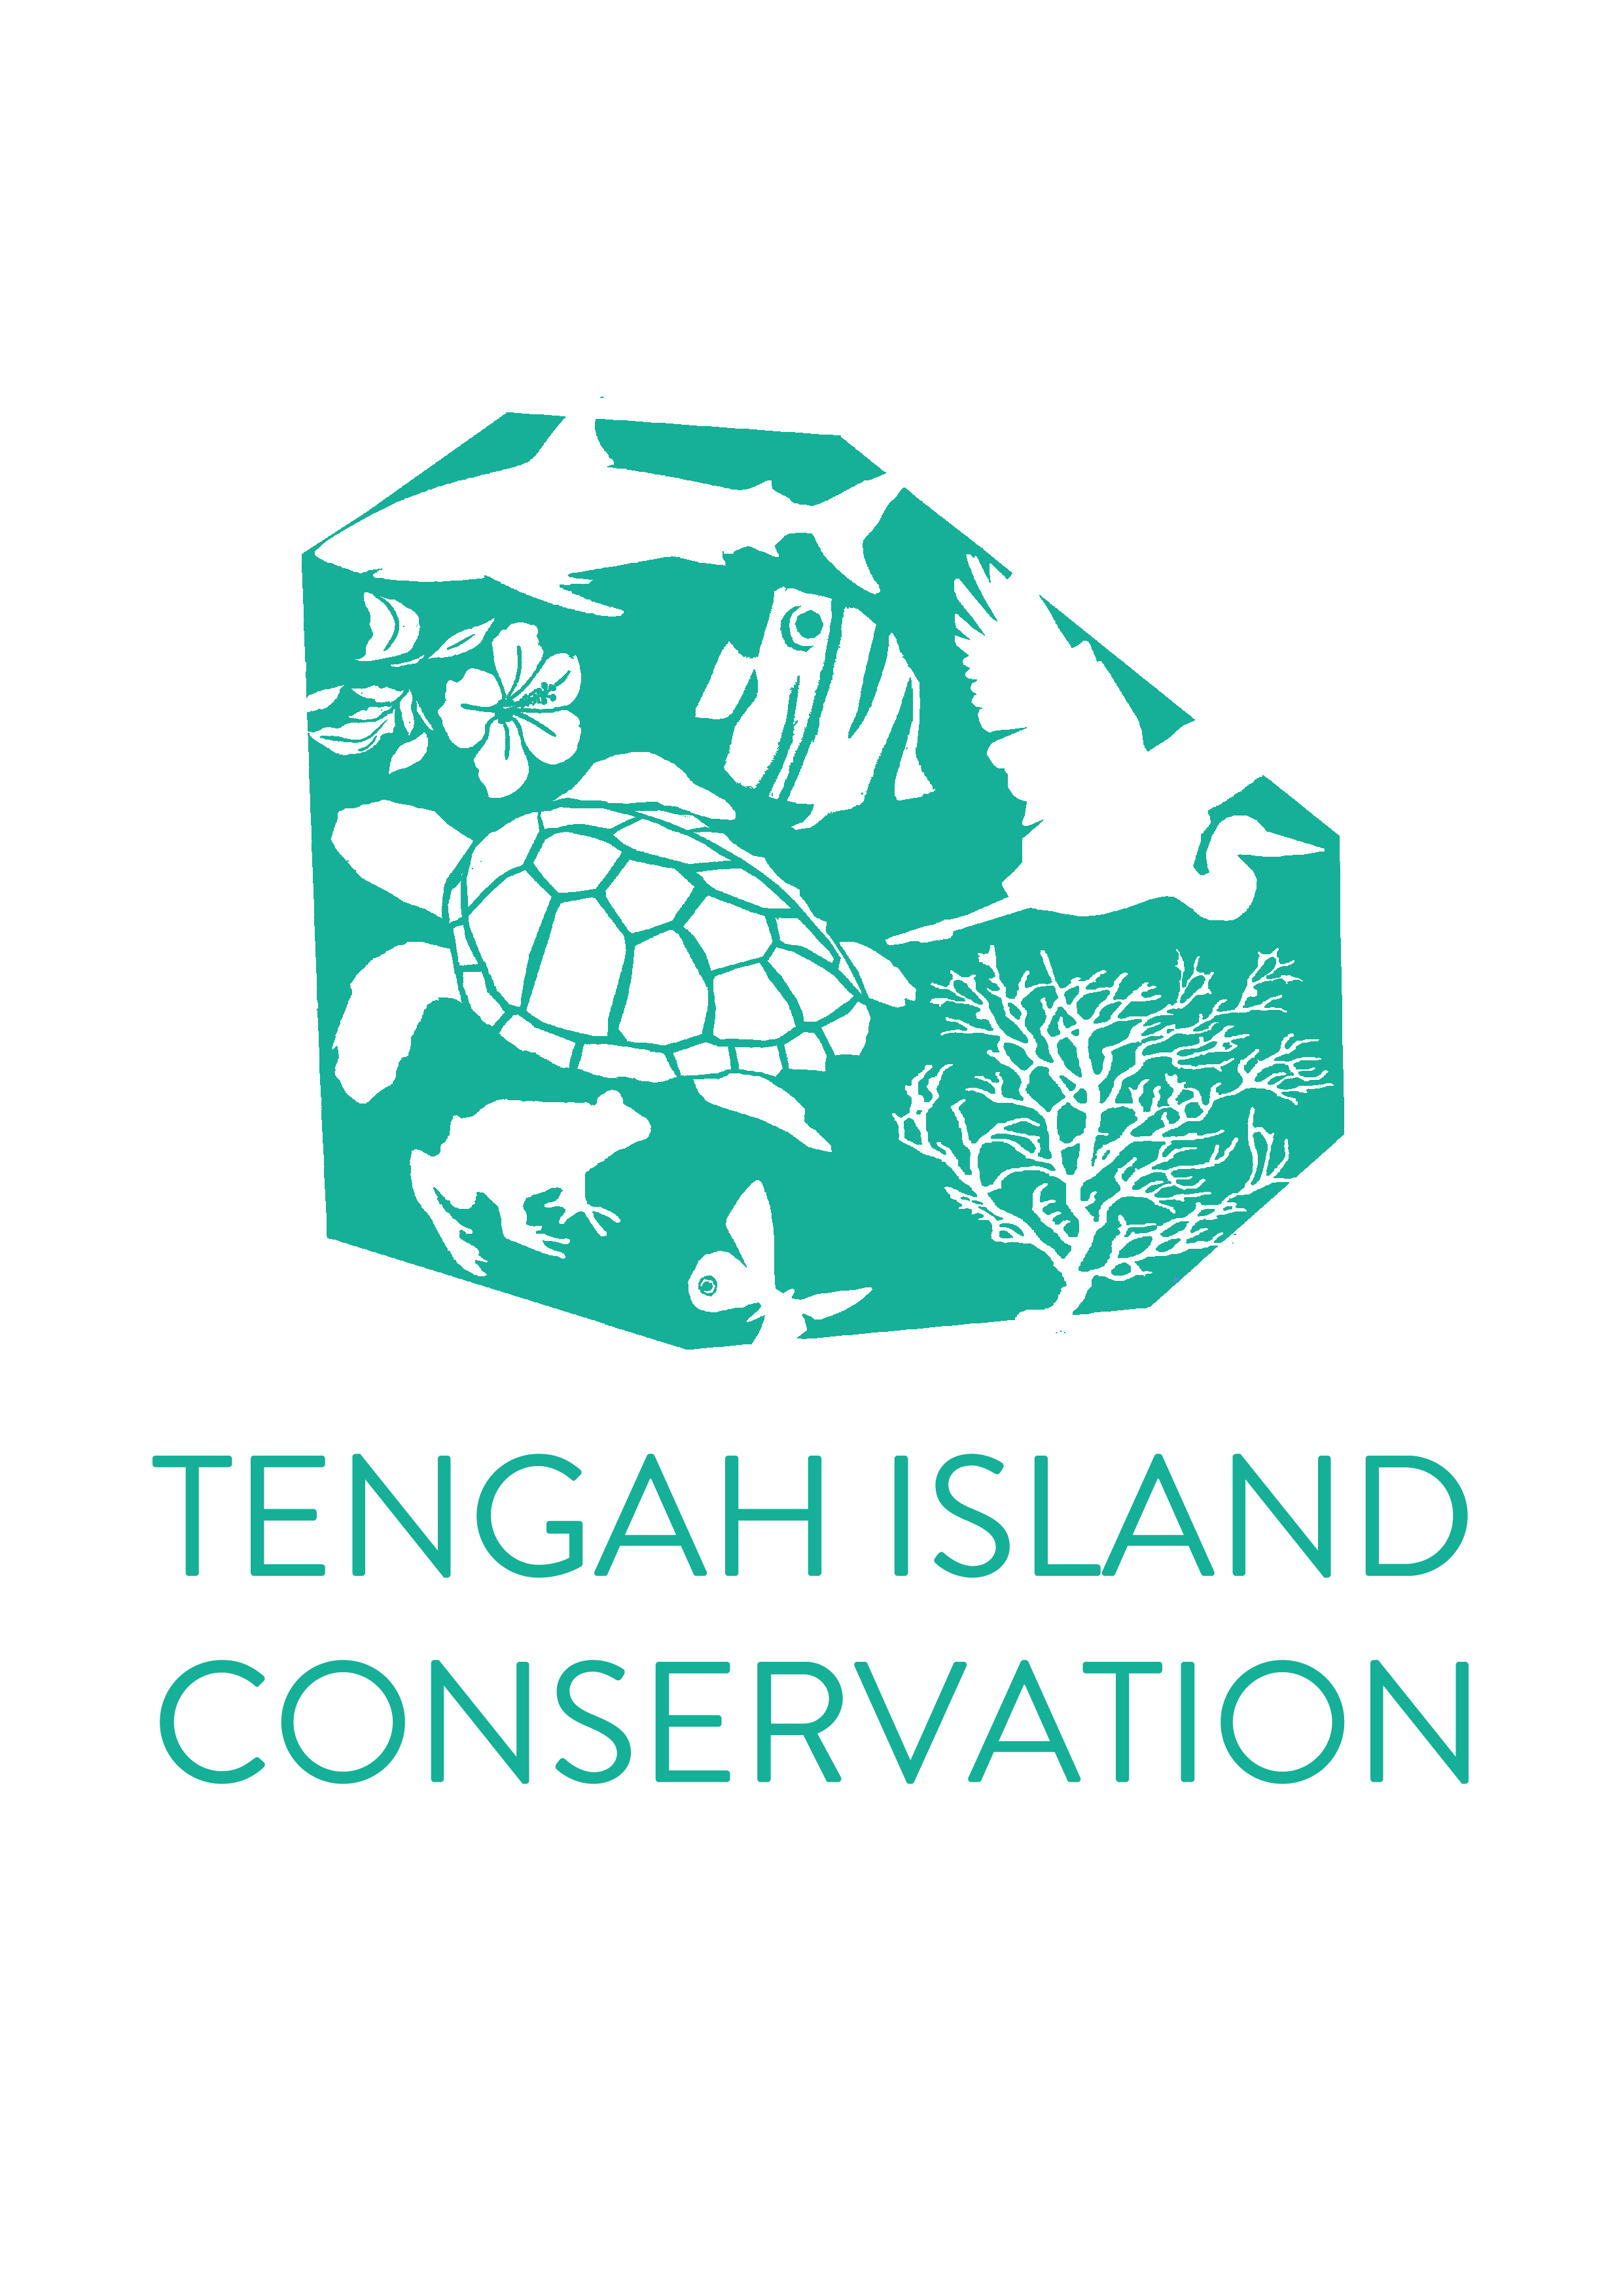 Tengah Island Conservation logo TURQUOISE.png